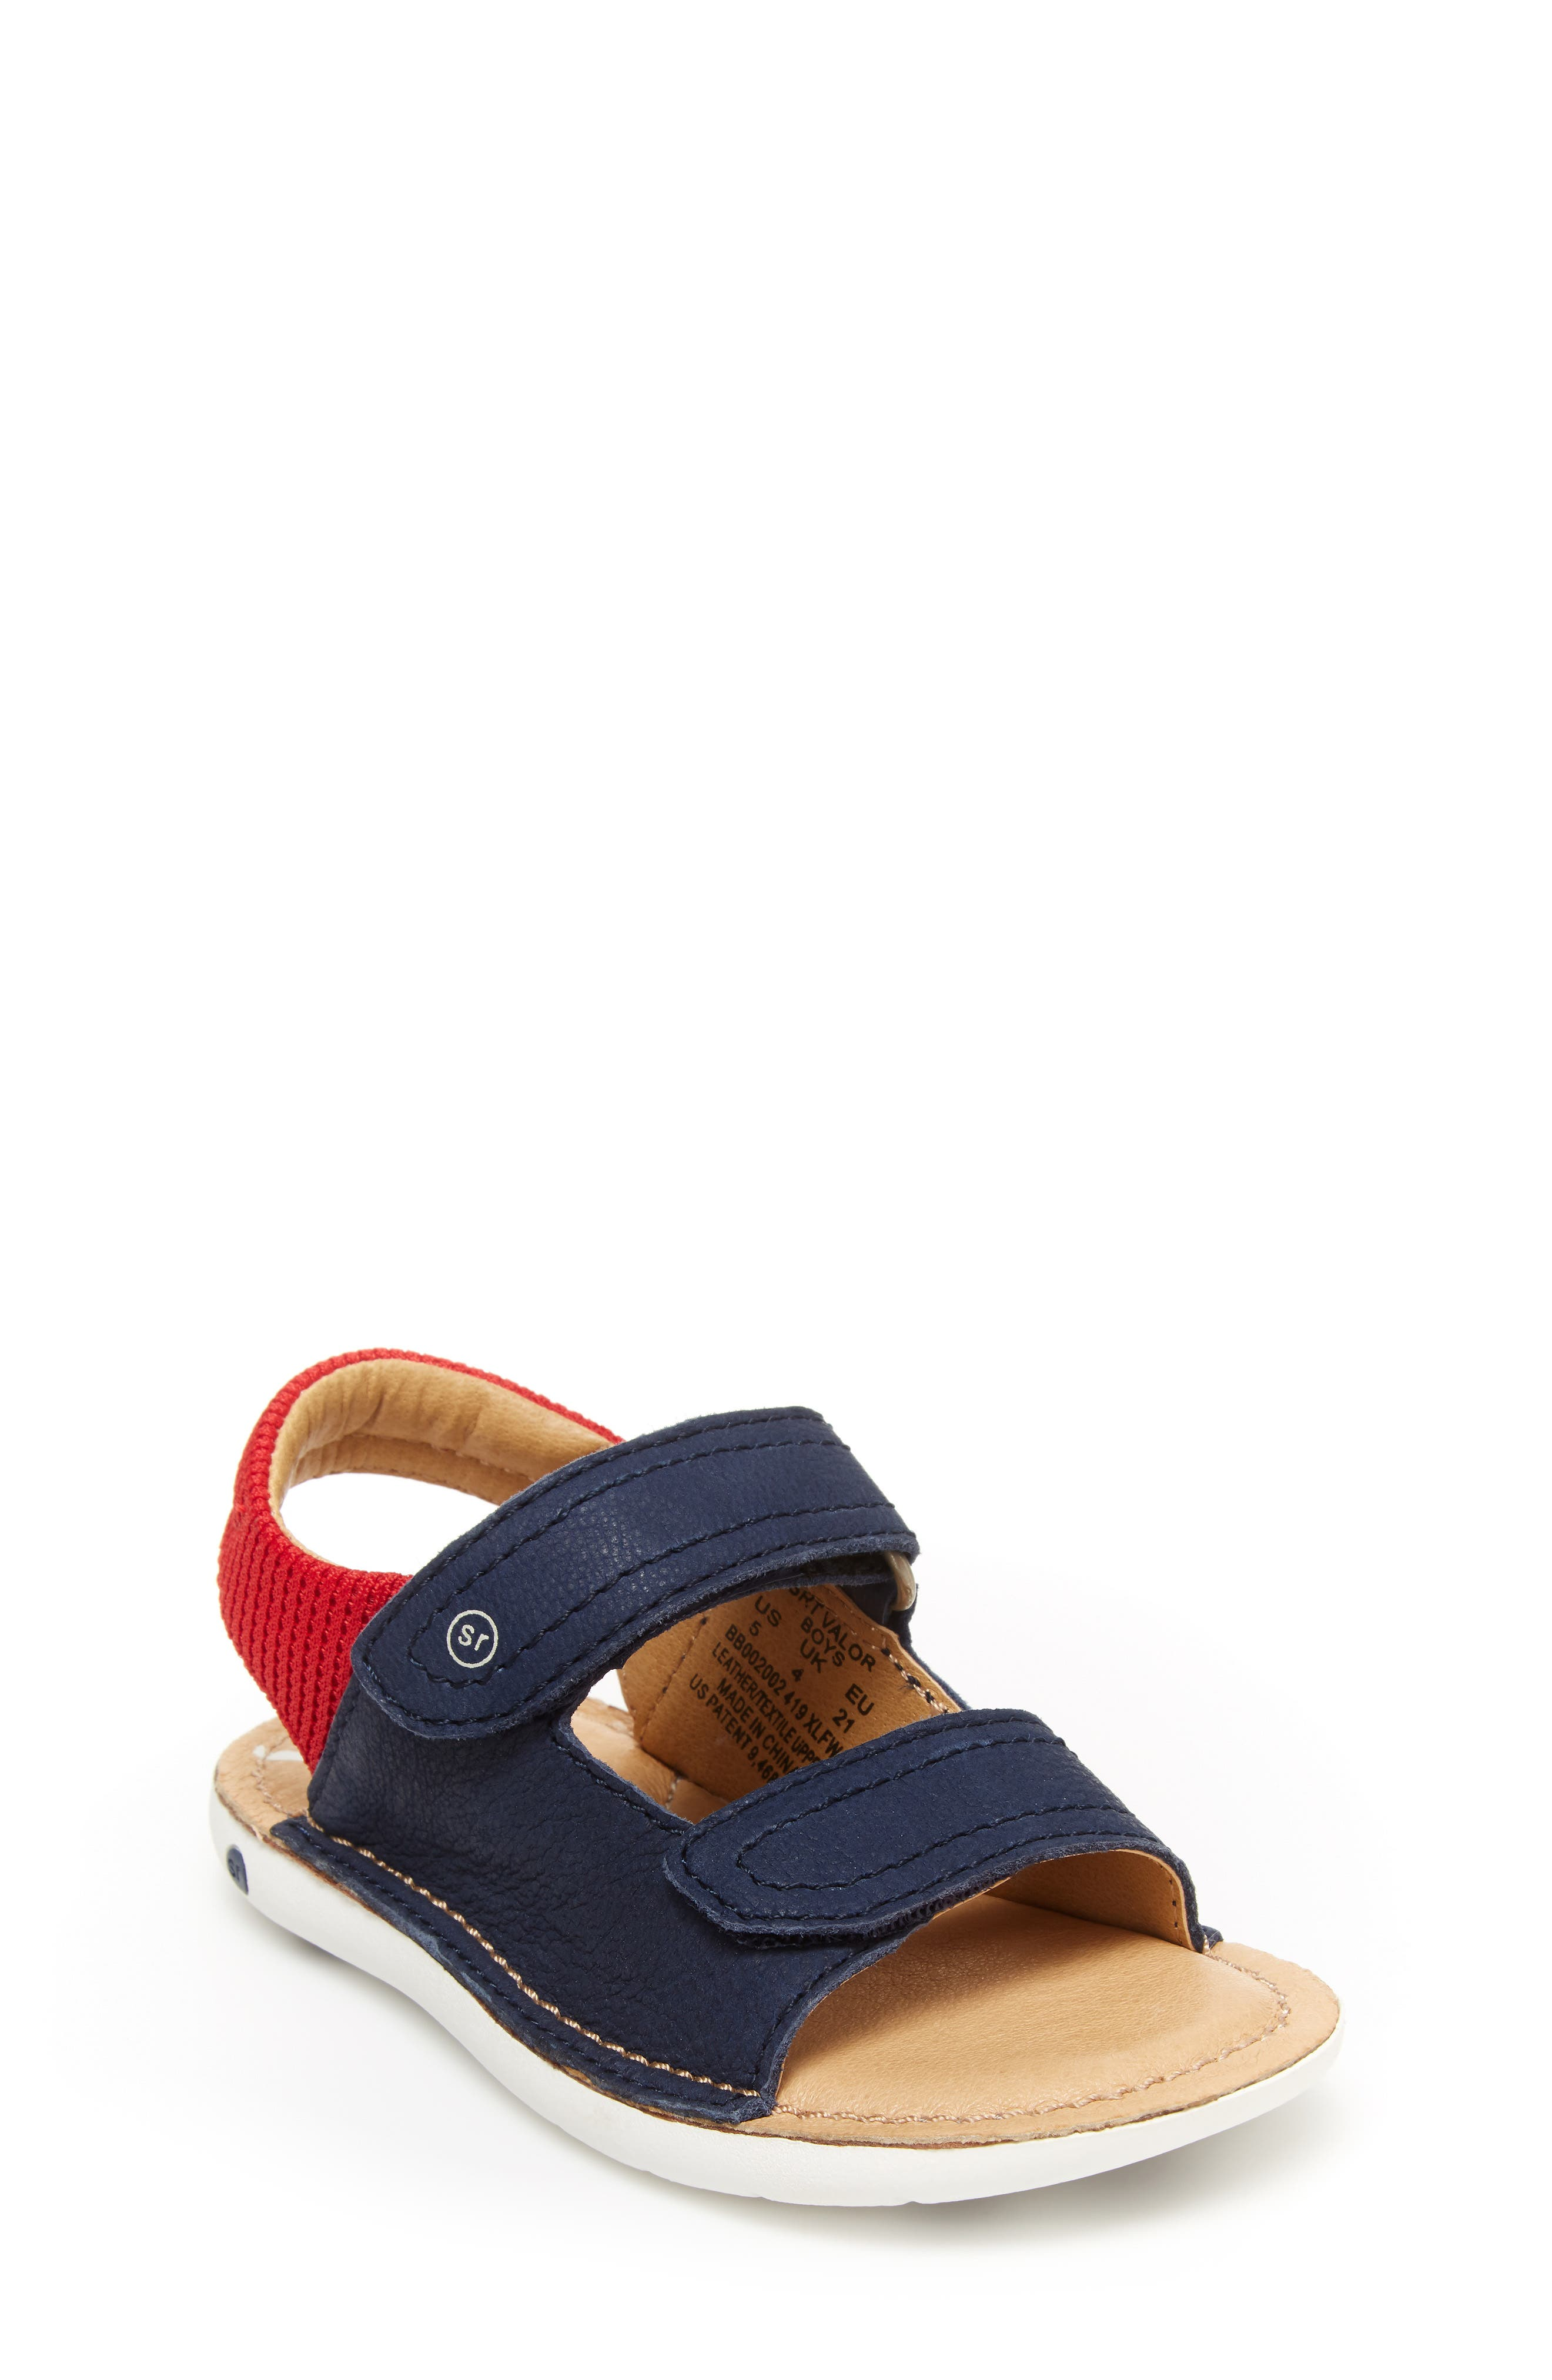 A memory foam footbed enhances the comfort and support of this breezy hook-and-loop sandal. Style Name: Stride Rite Valor Sandal (Baby, Walker & Toddler). Style Number: 5978065. Available in stores.